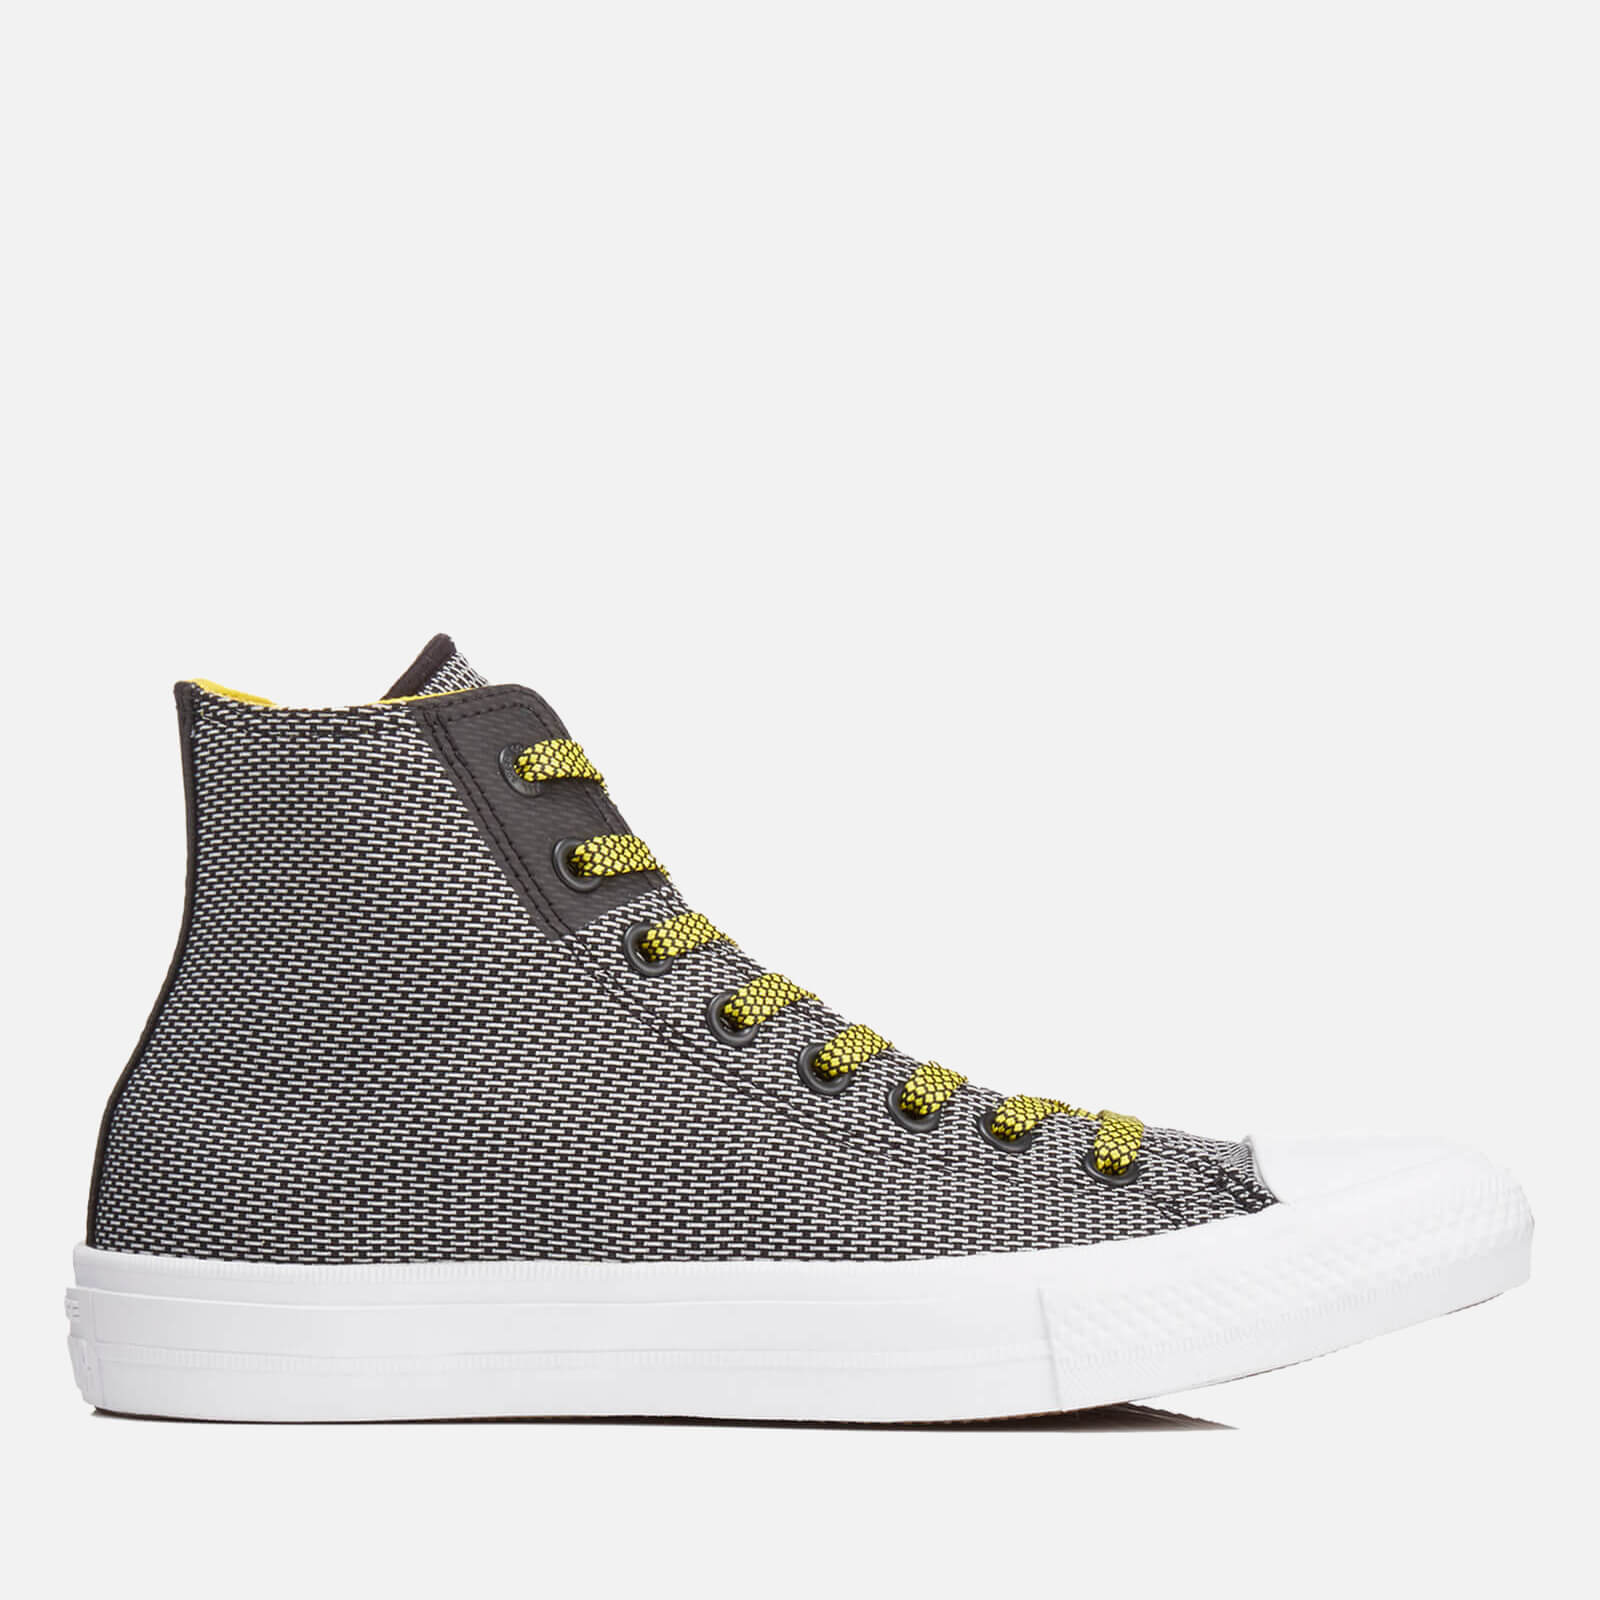 4dc0c9774383 Converse Men s Chuck Taylor All Star II Hi-Top Trainers - Black White Fresh  Yellow - Free UK Delivery over £50